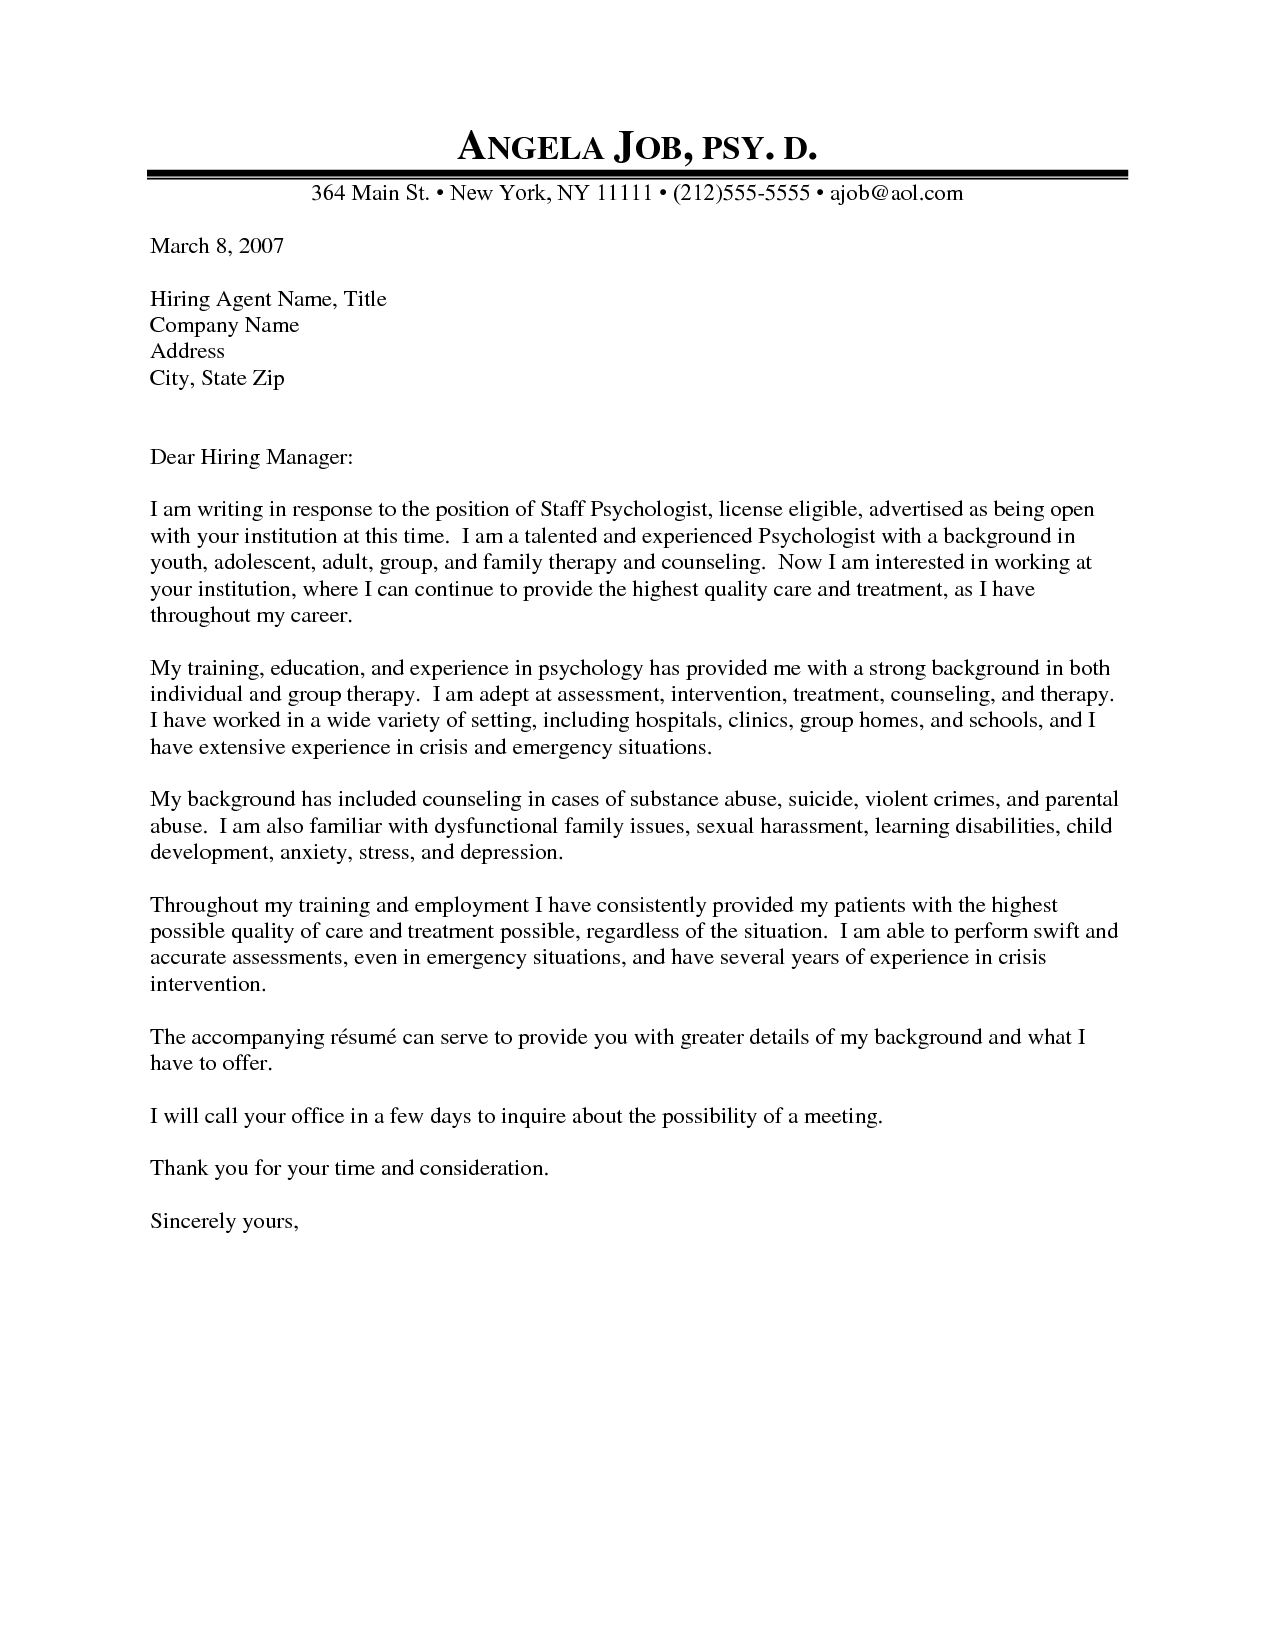 Professional Counseling Cover Letter